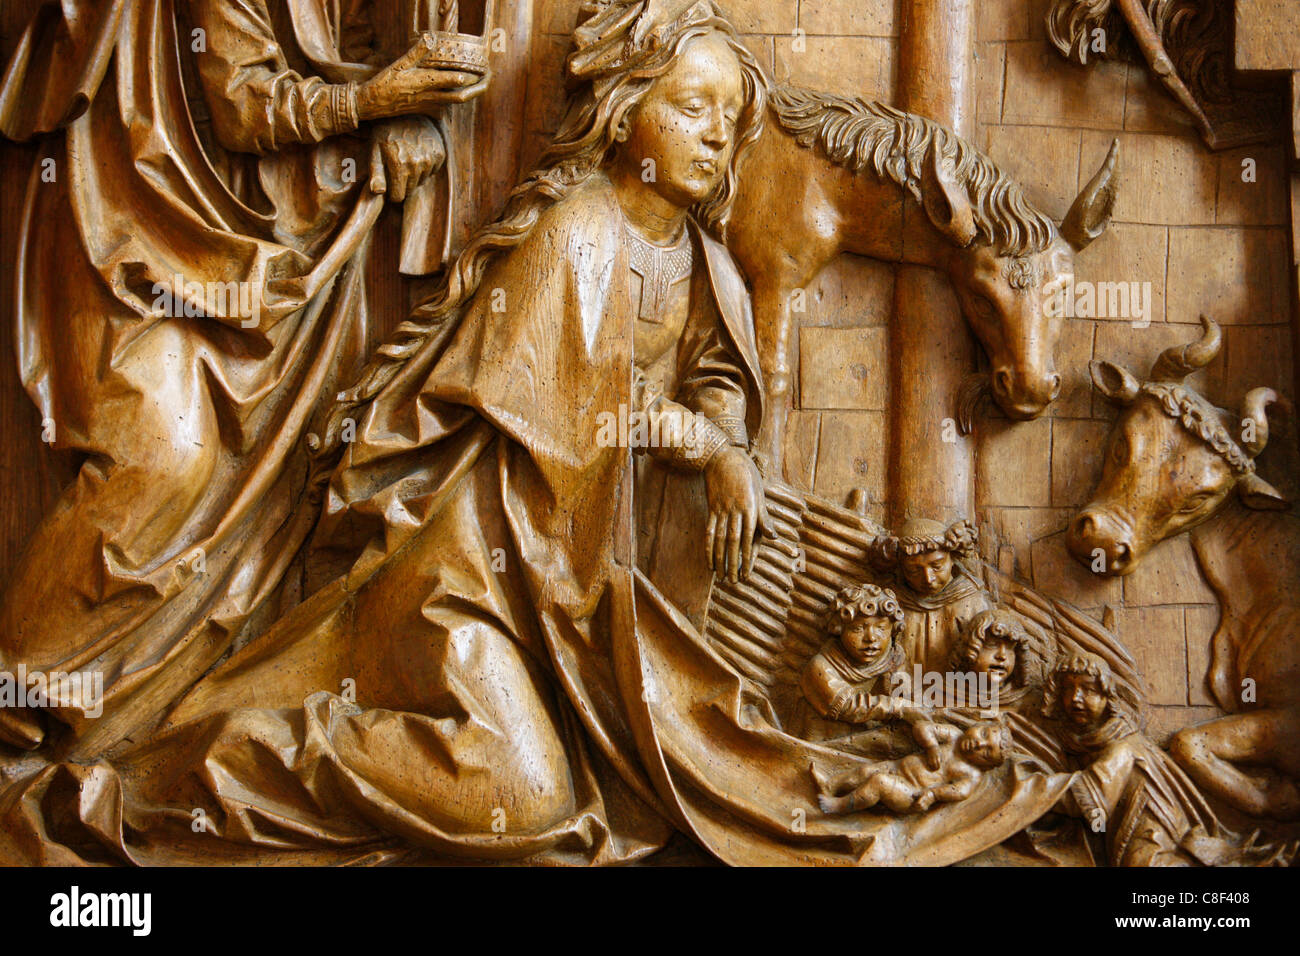 Detail of the Nativity on the carved altar, dating from 1509, Mauer bei Melk church, Lower Austria, Austria - Stock Image